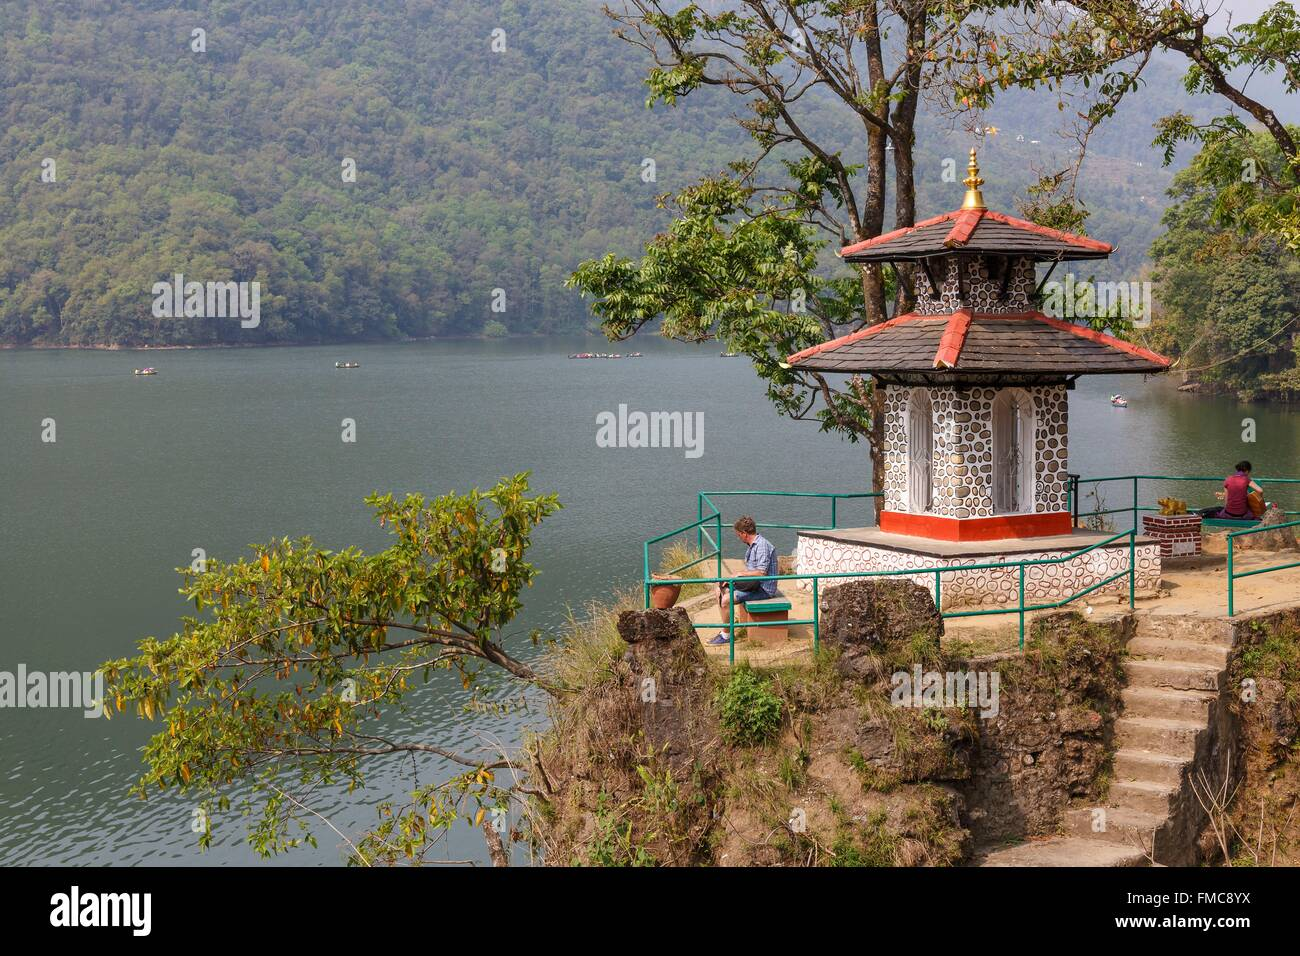 Nepal, Gandaki zone, Pokhara, temple on the Phewa lake - Stock Image